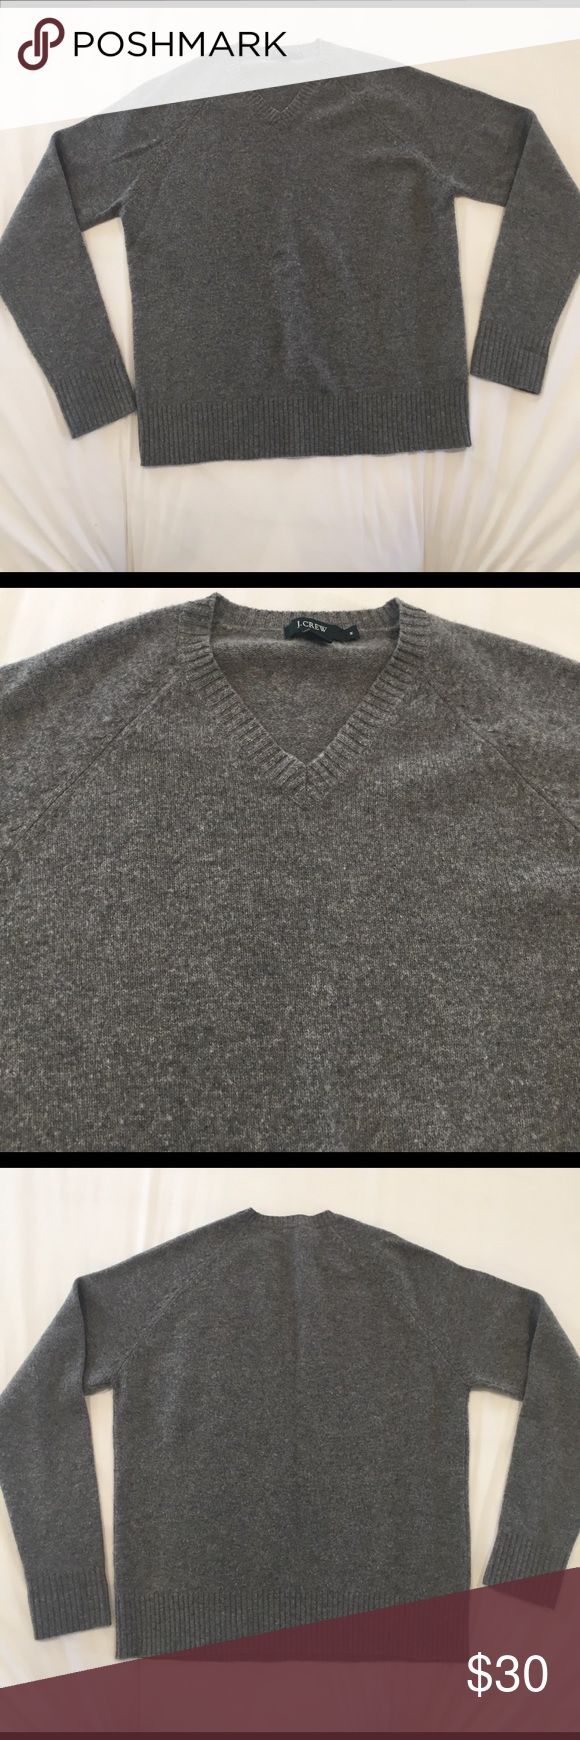 J. Crew Men's Wool Sweater Gray v-neck 100% lambs wool. J. Crew Sweaters V-Neck